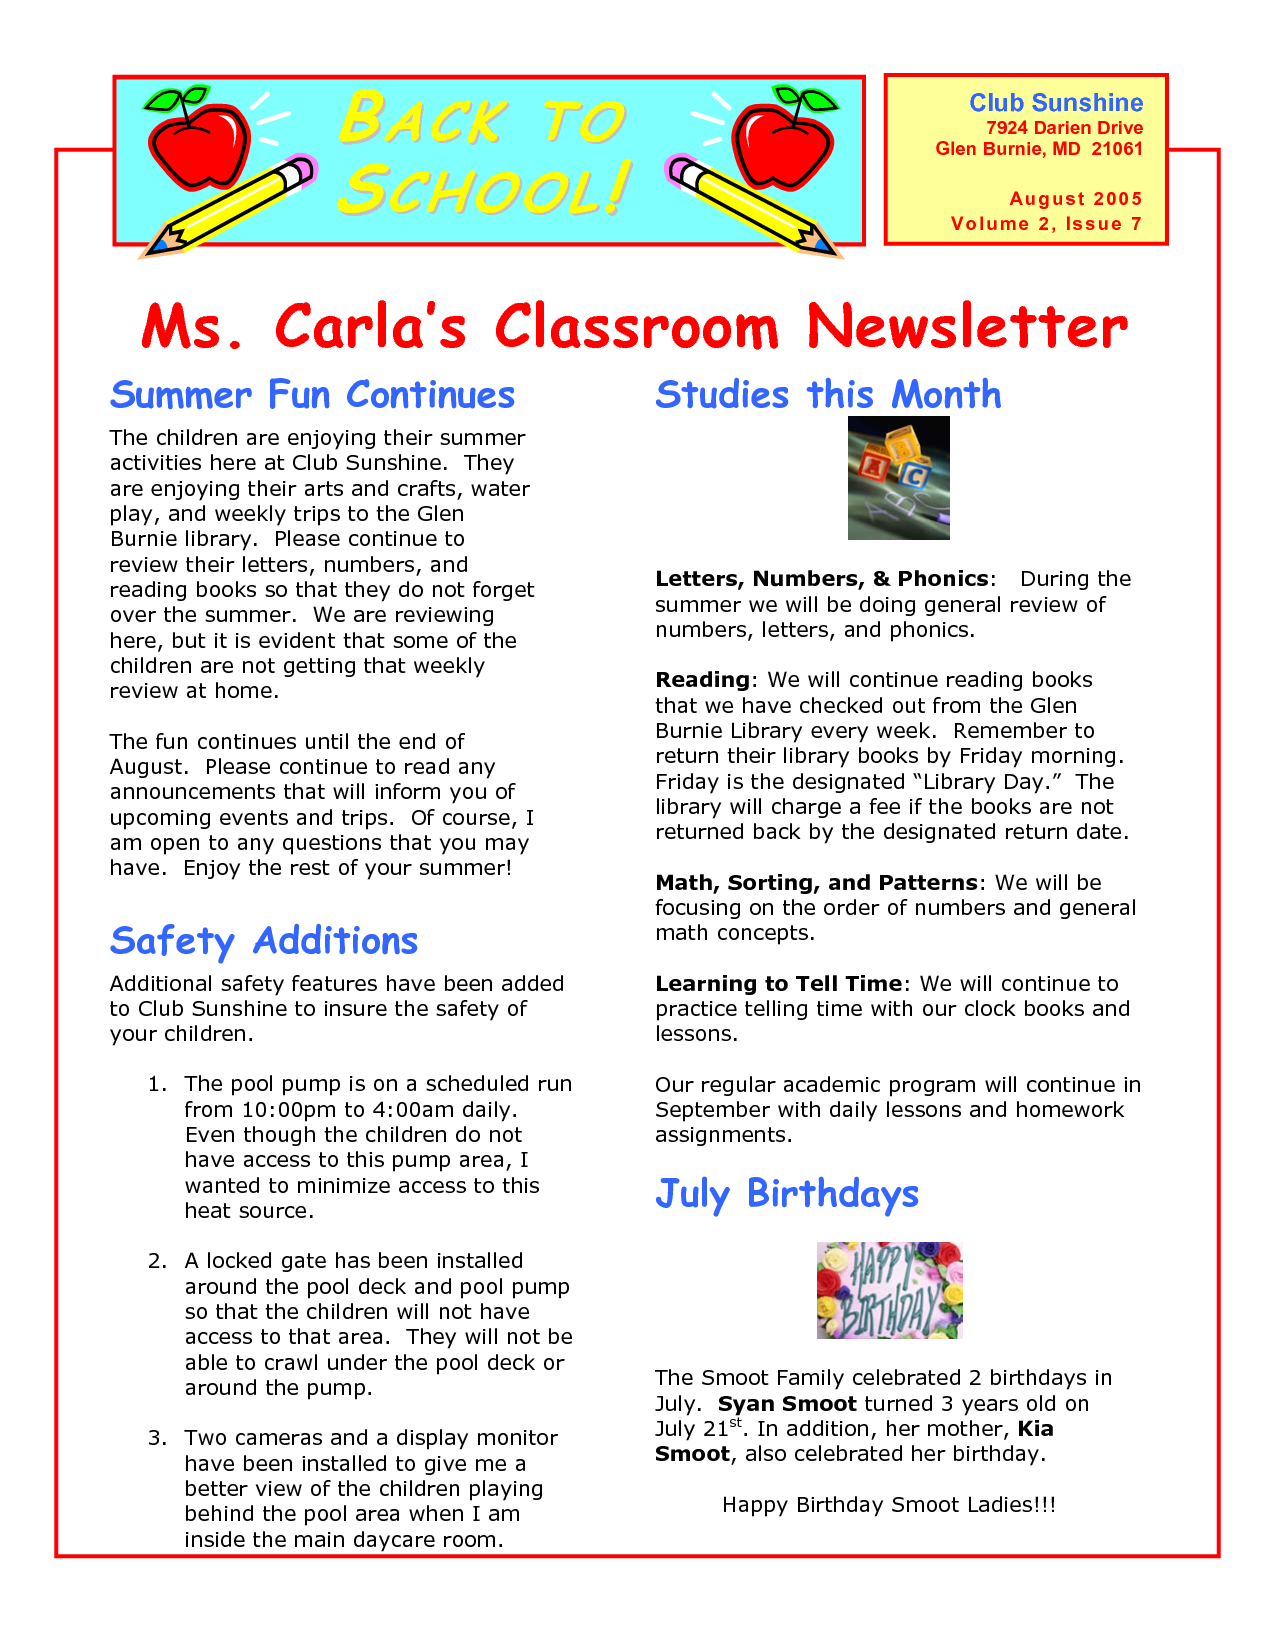 Classroom Newsletter Ideas ~ Classroom newsletter templates wallpapersupnet xbedd os